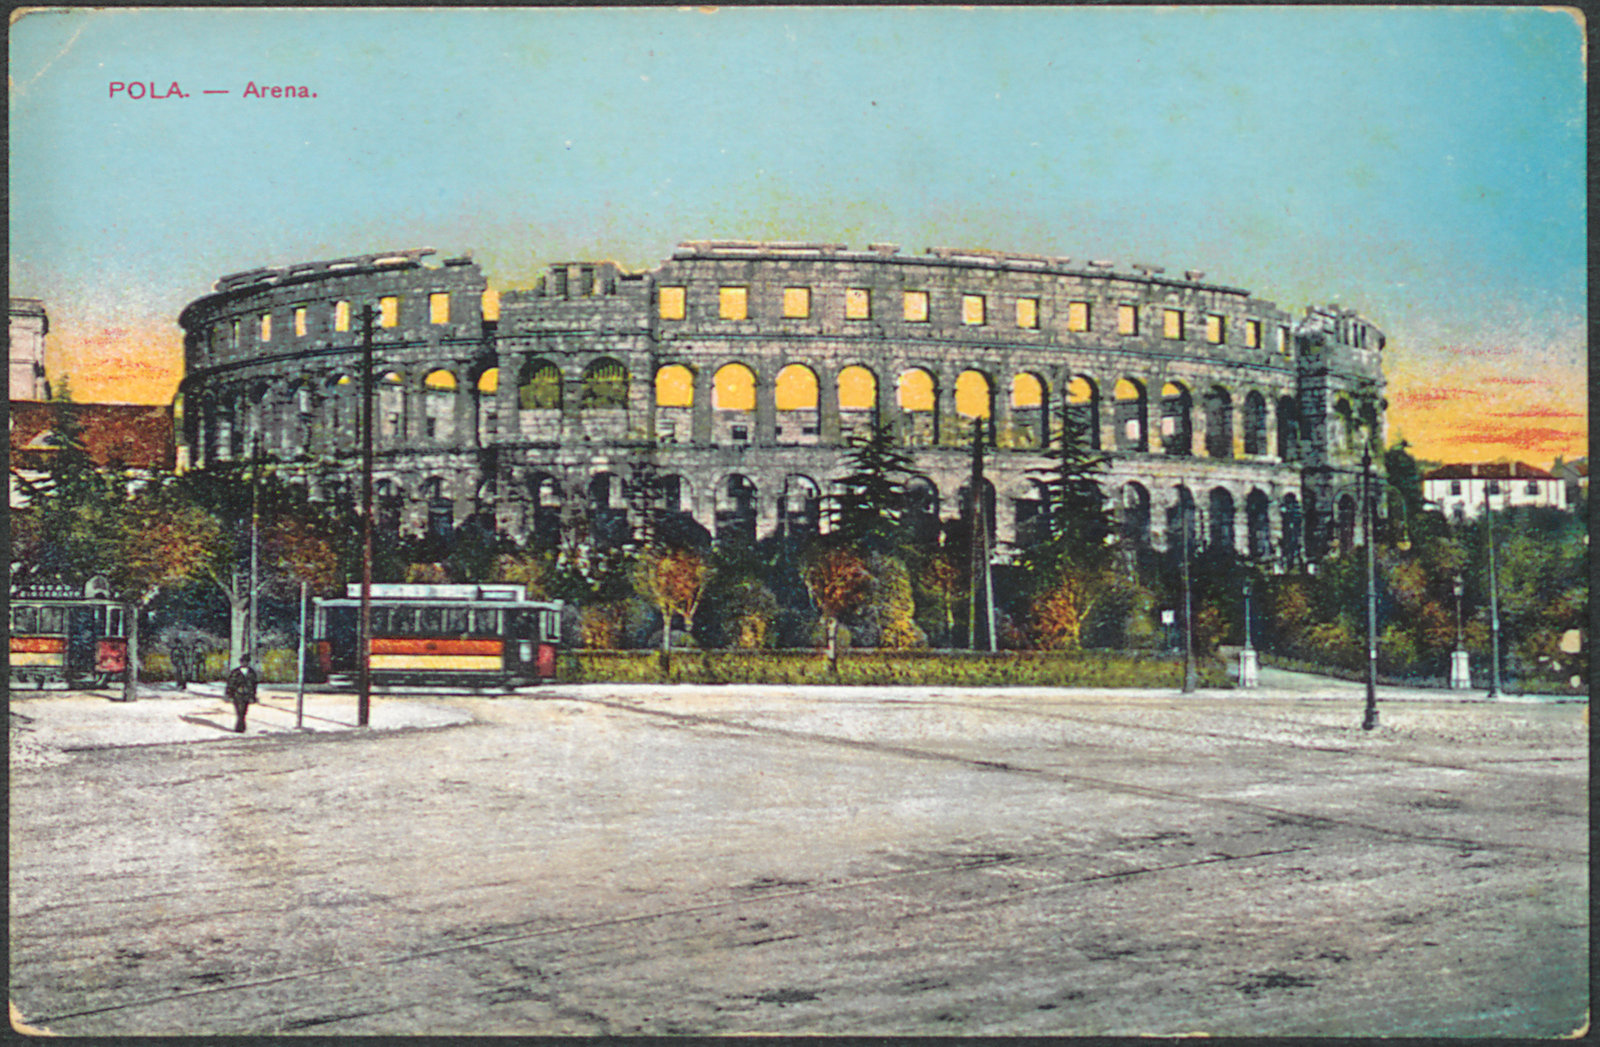 Pola [Pula]: Arena, 1915, M. Schulz, National and University Library in Zagreb, Public Domain Mark